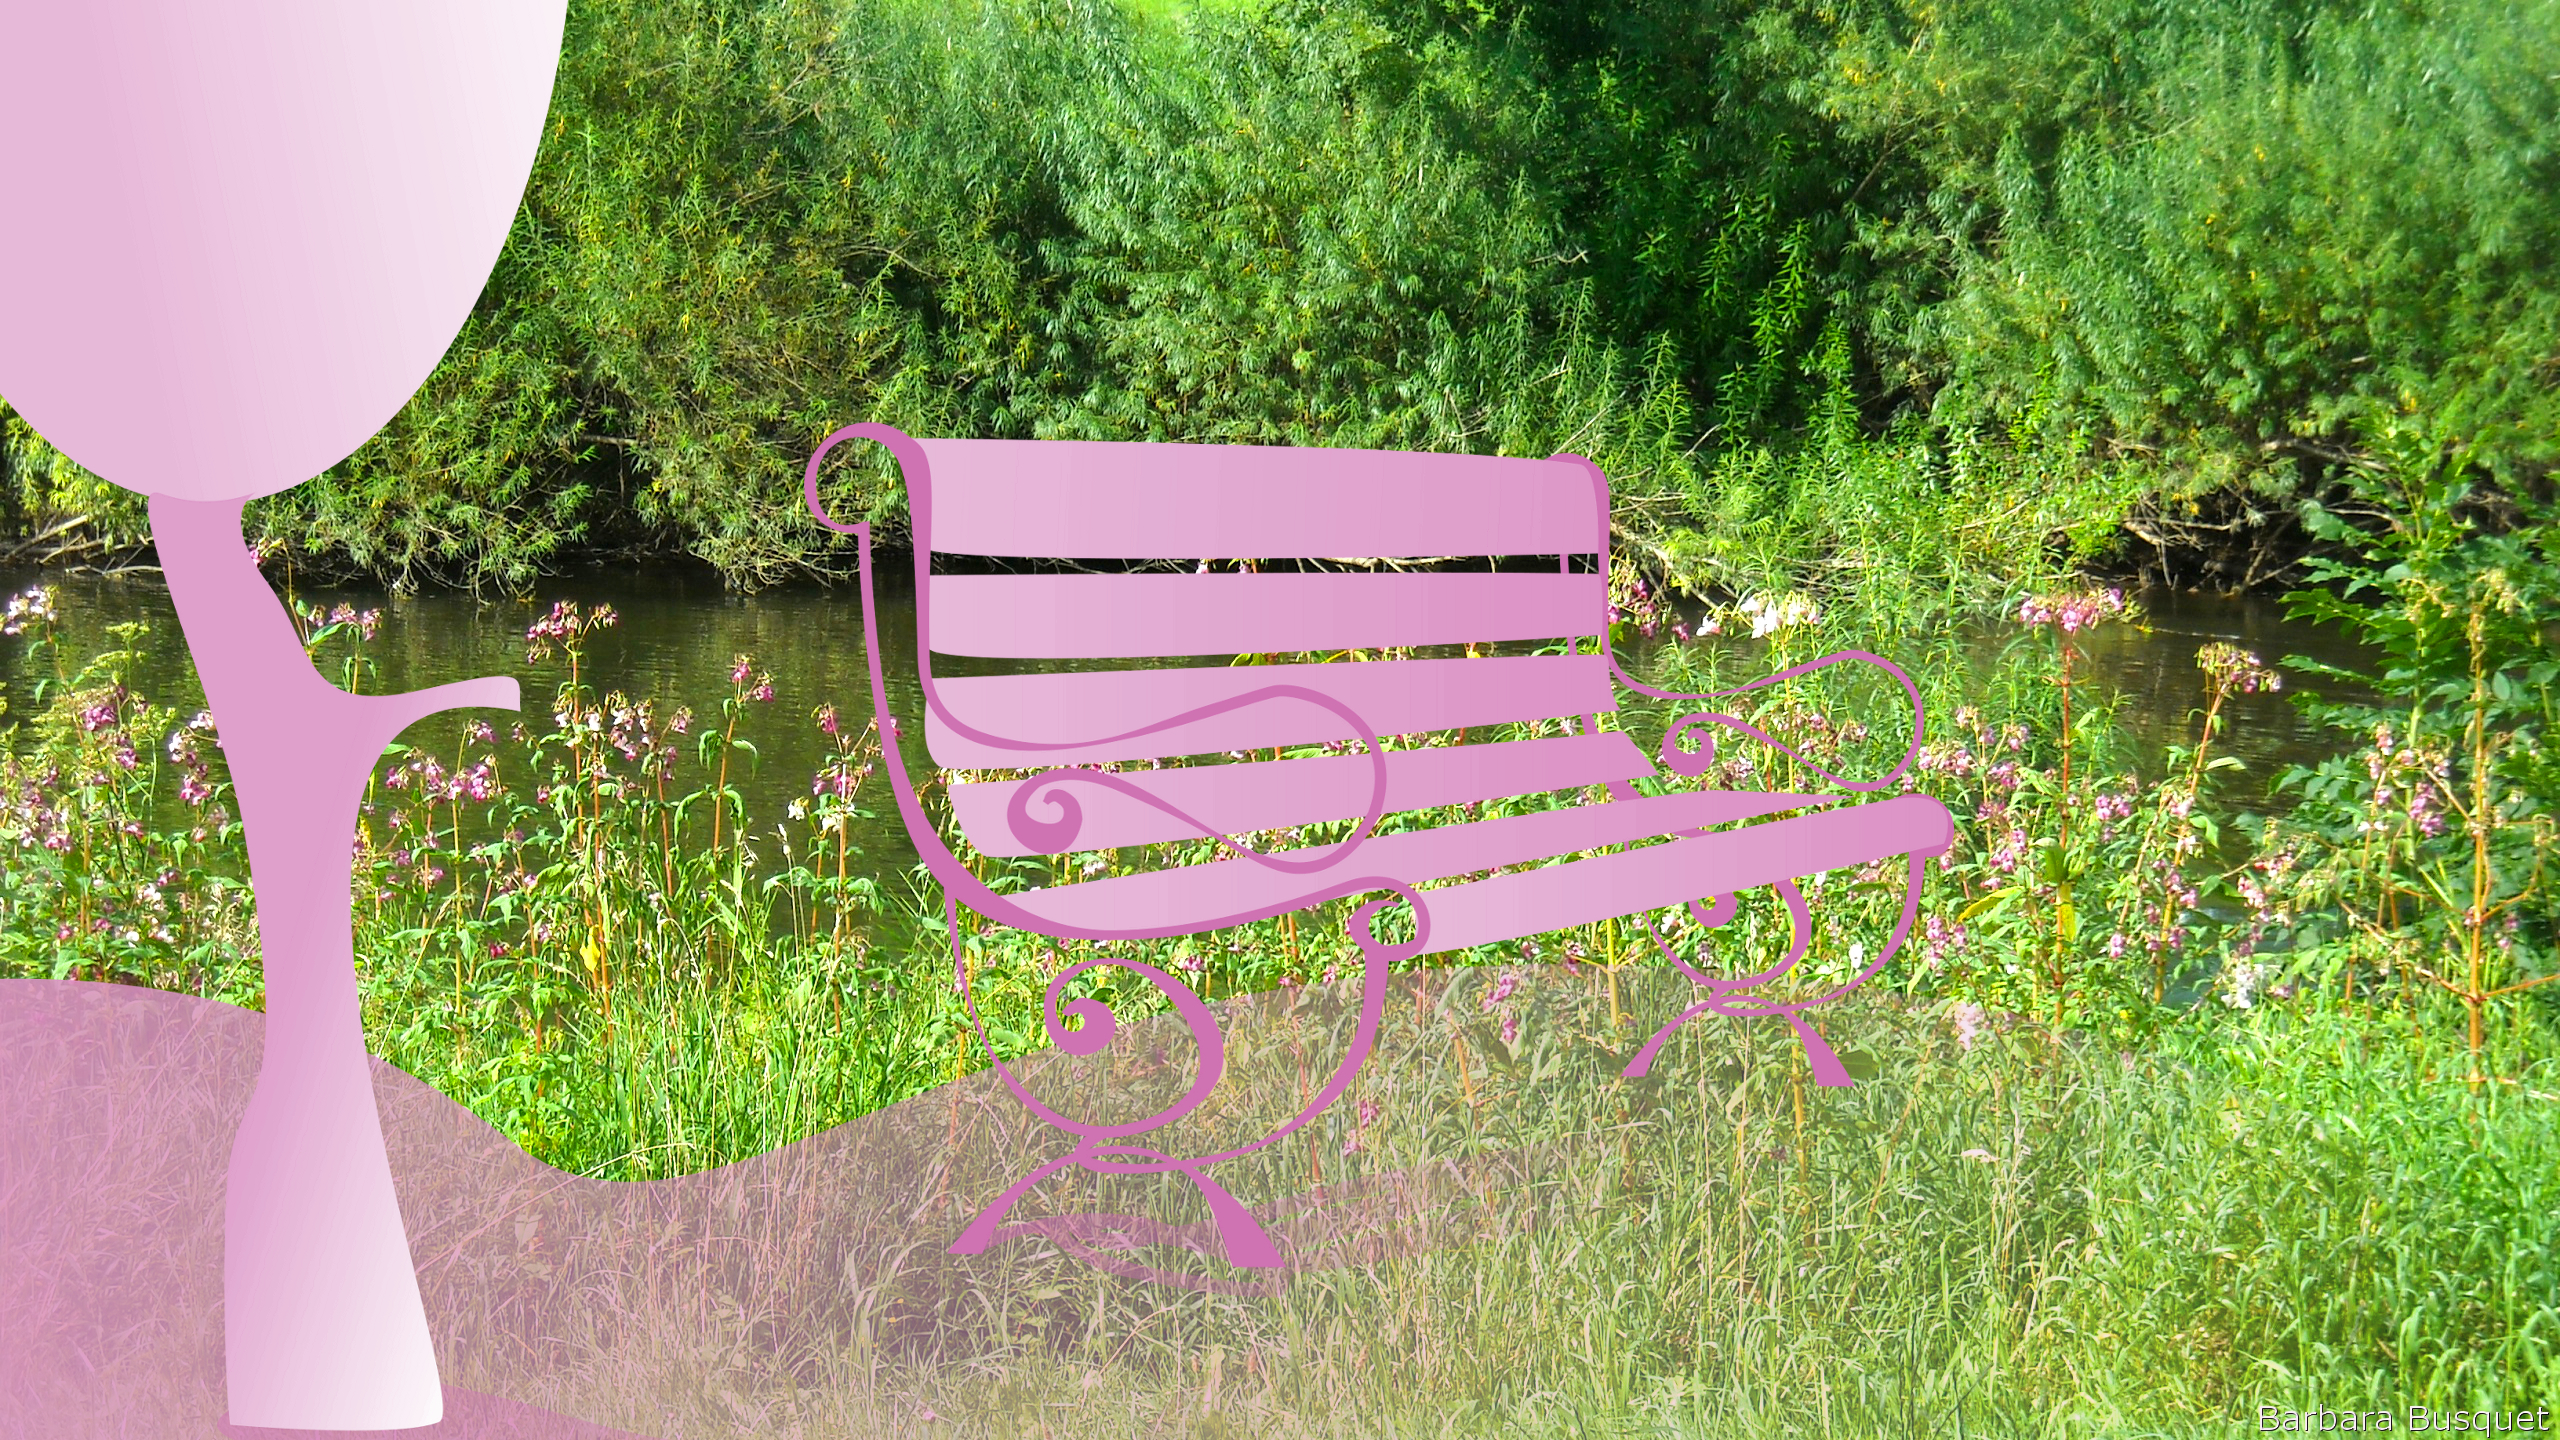 Iron Bench In The Park Barbaras Hd Wallpapers